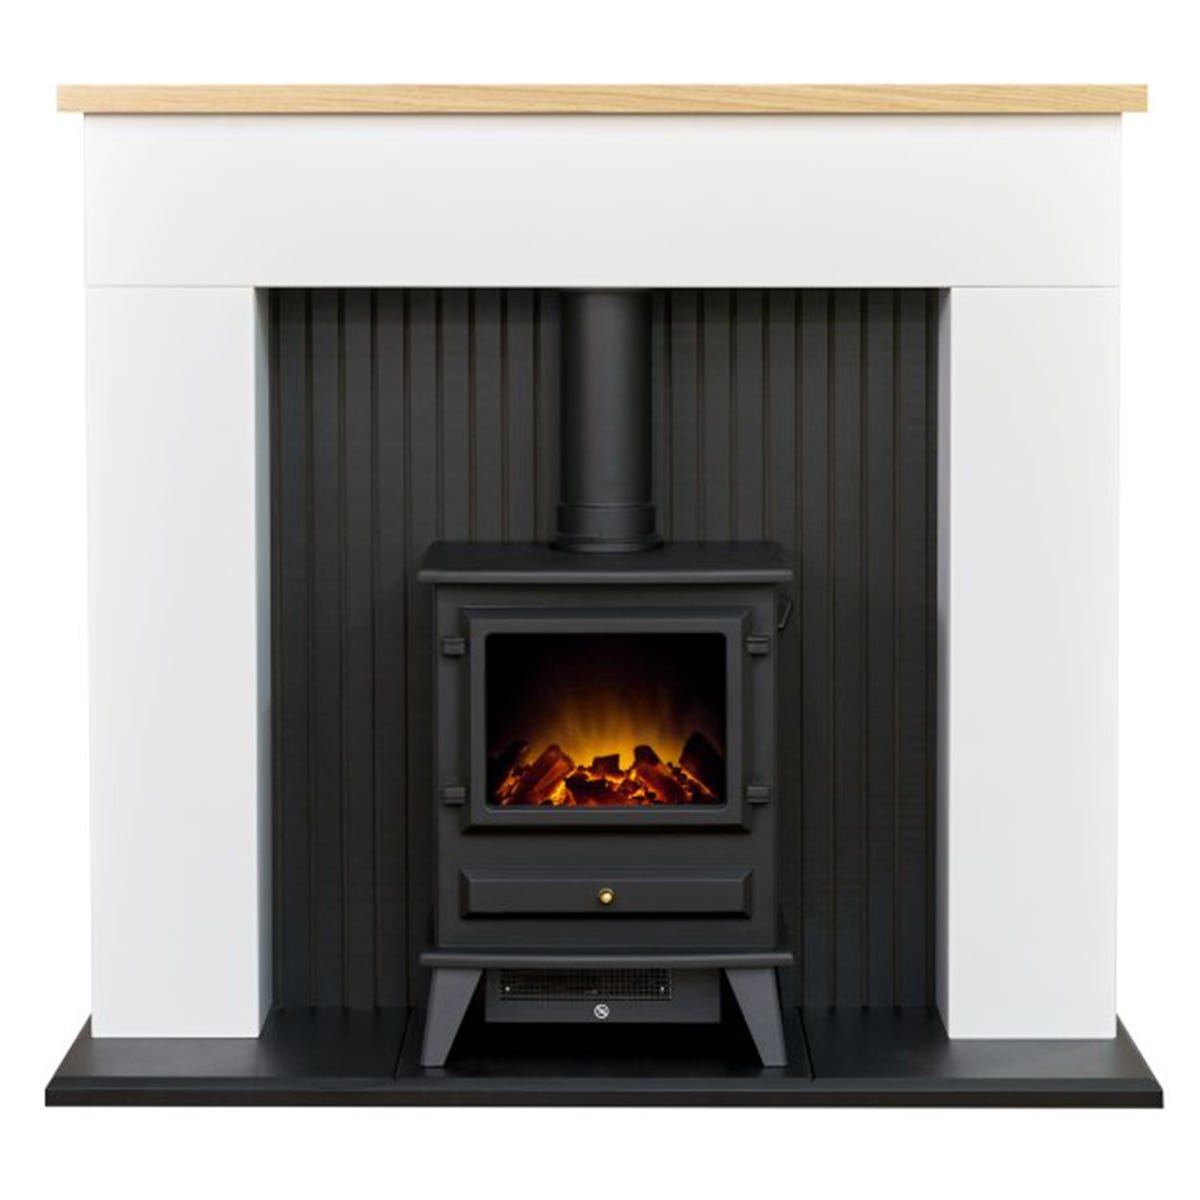 Adam Innsbruck Stove Fireplace in Pure White with Hudson Electric Stove in Black 48 Inch